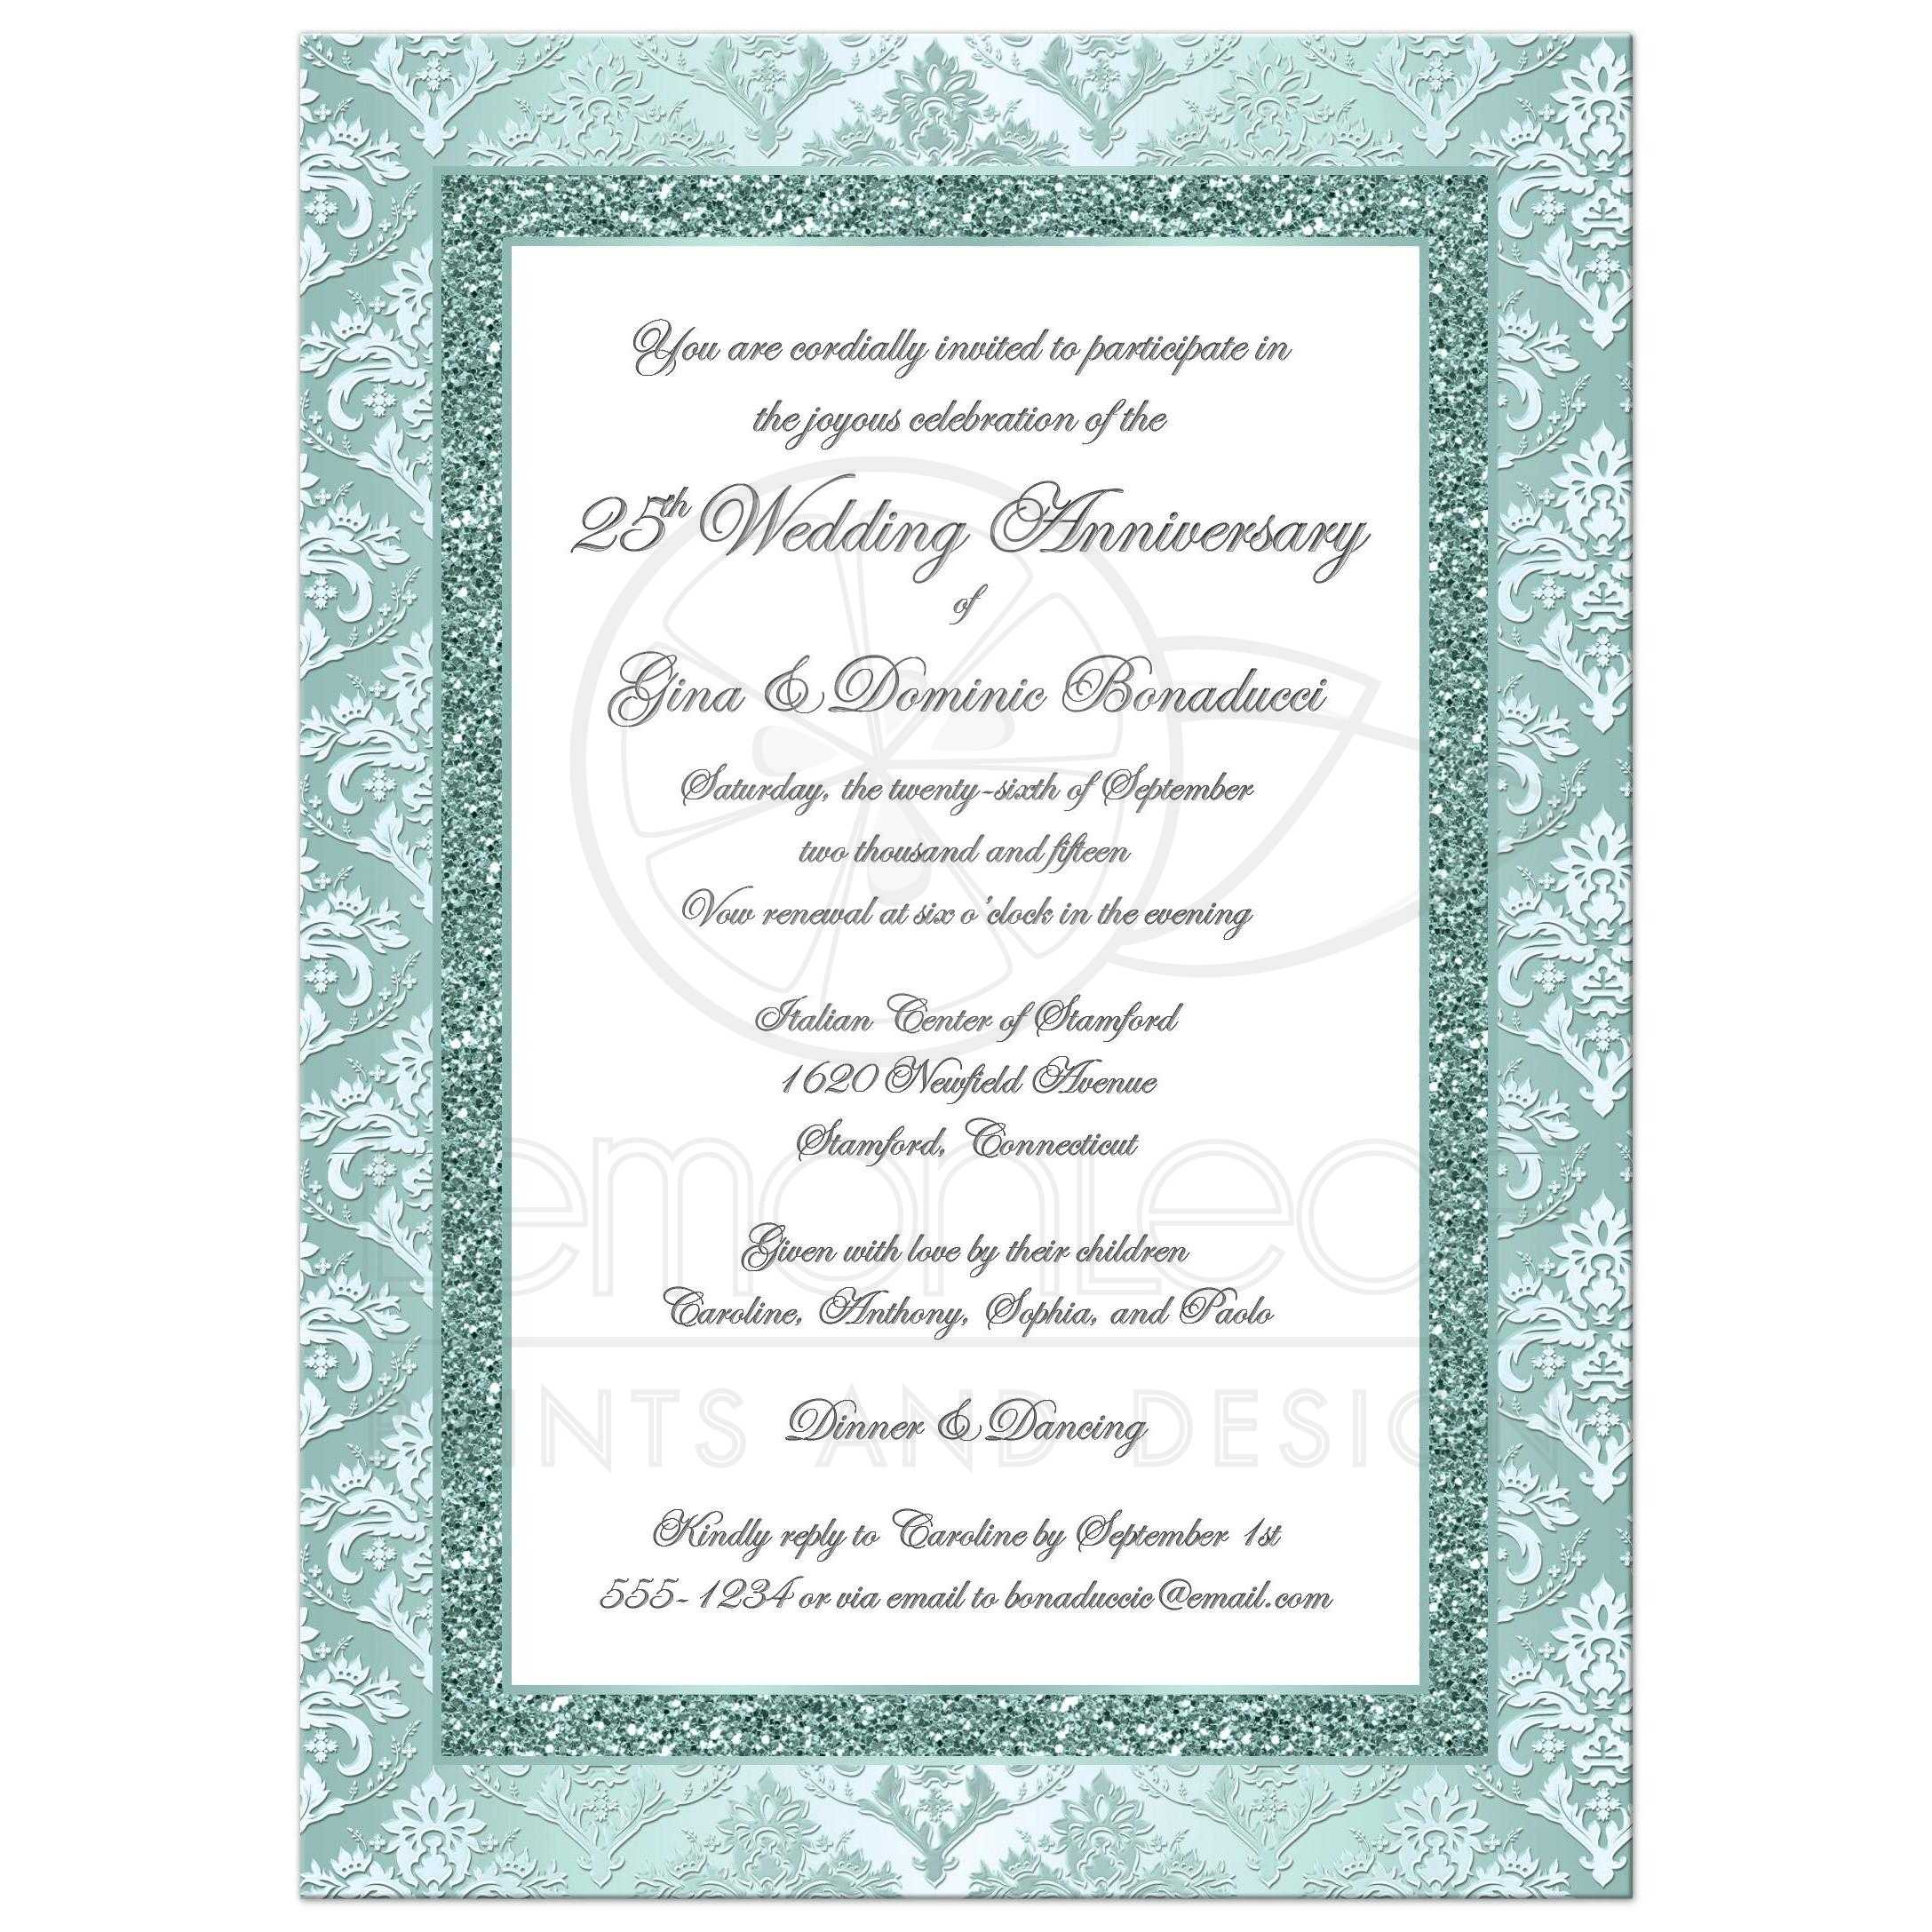 25th Wedding Anniversary Invitation | Seafoam and White Damask 2 ...